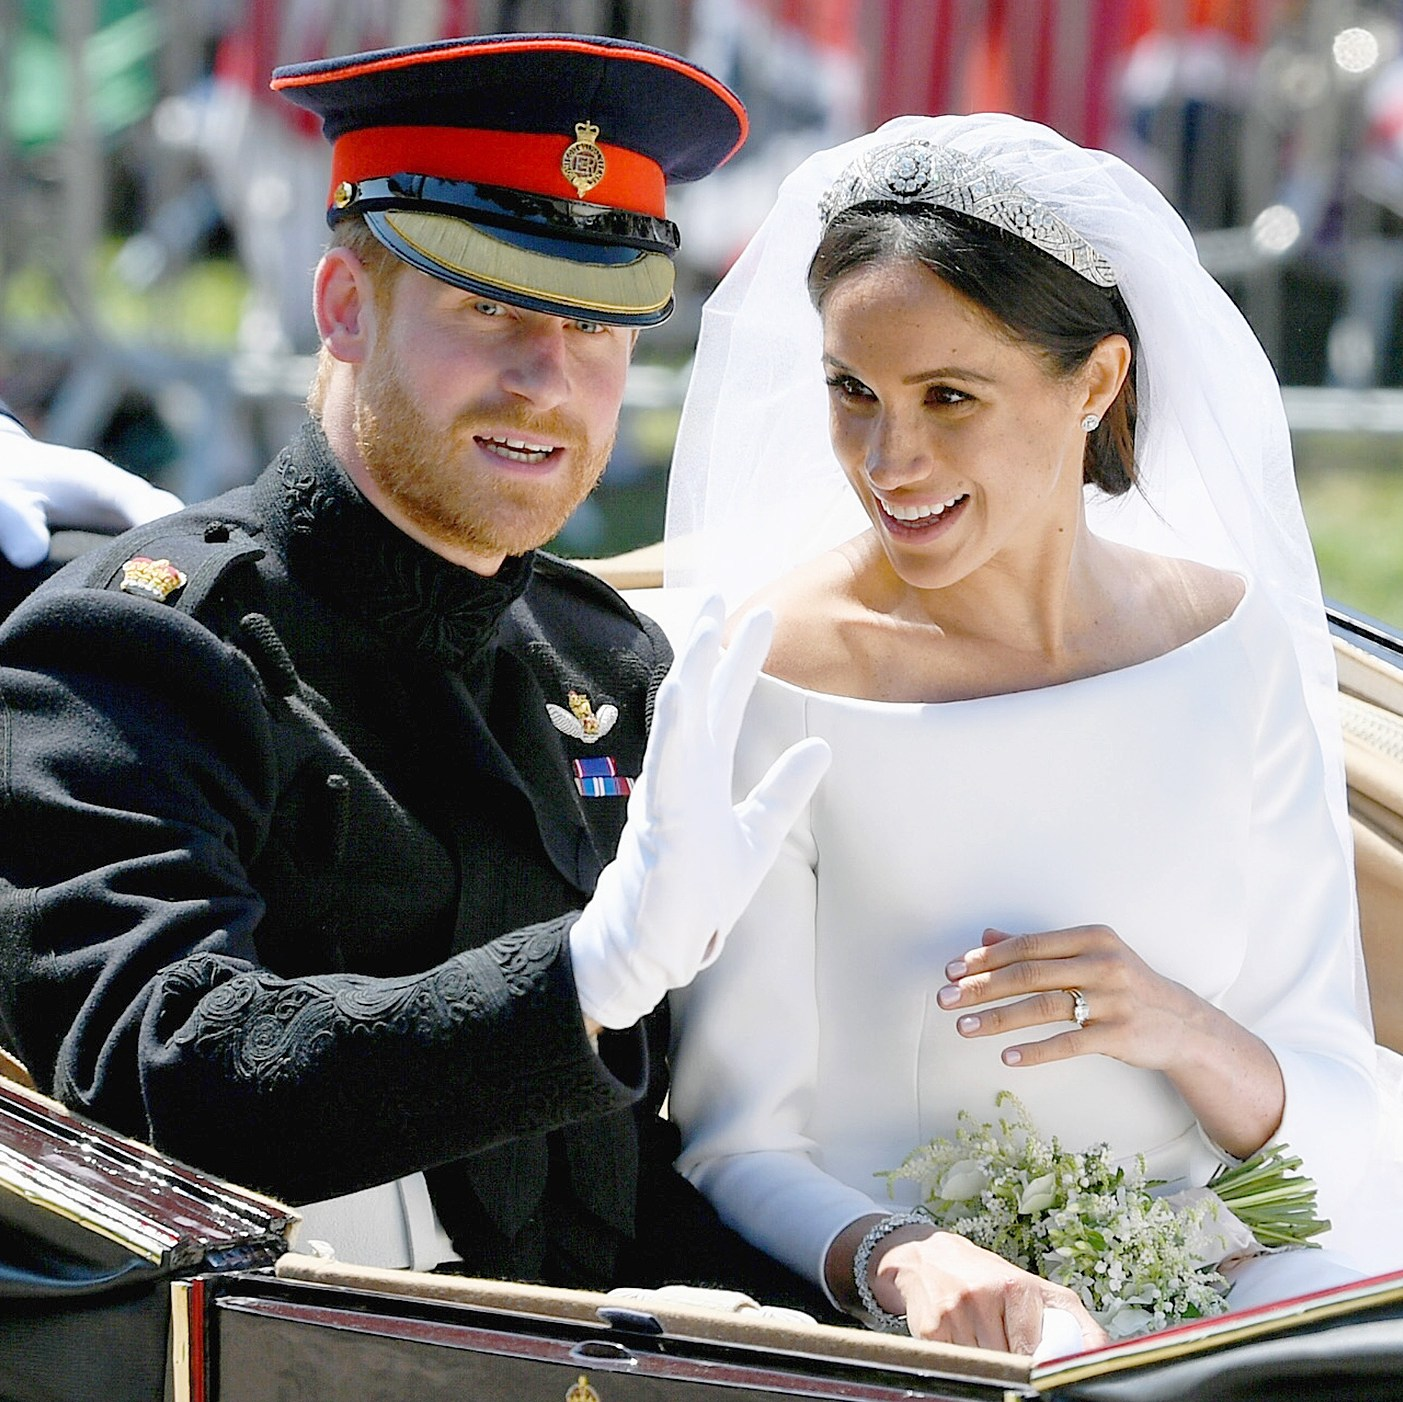 Prince Harry, Duchess Meghan Markle, Royal Wedding, Carriage